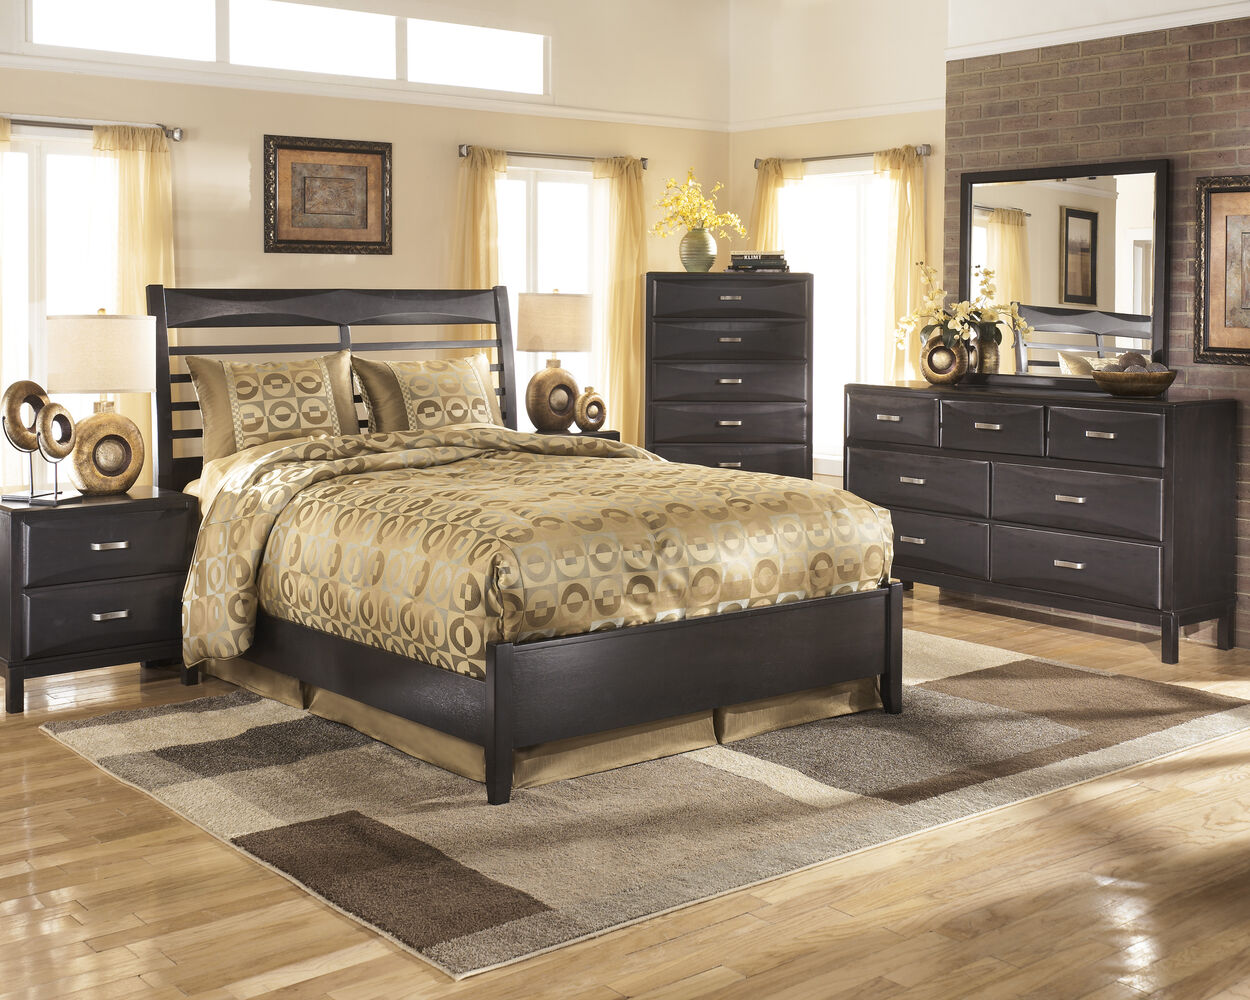 cupboard bed rustic canopy partizans sets the frames platform ashley bedroom furniture frame